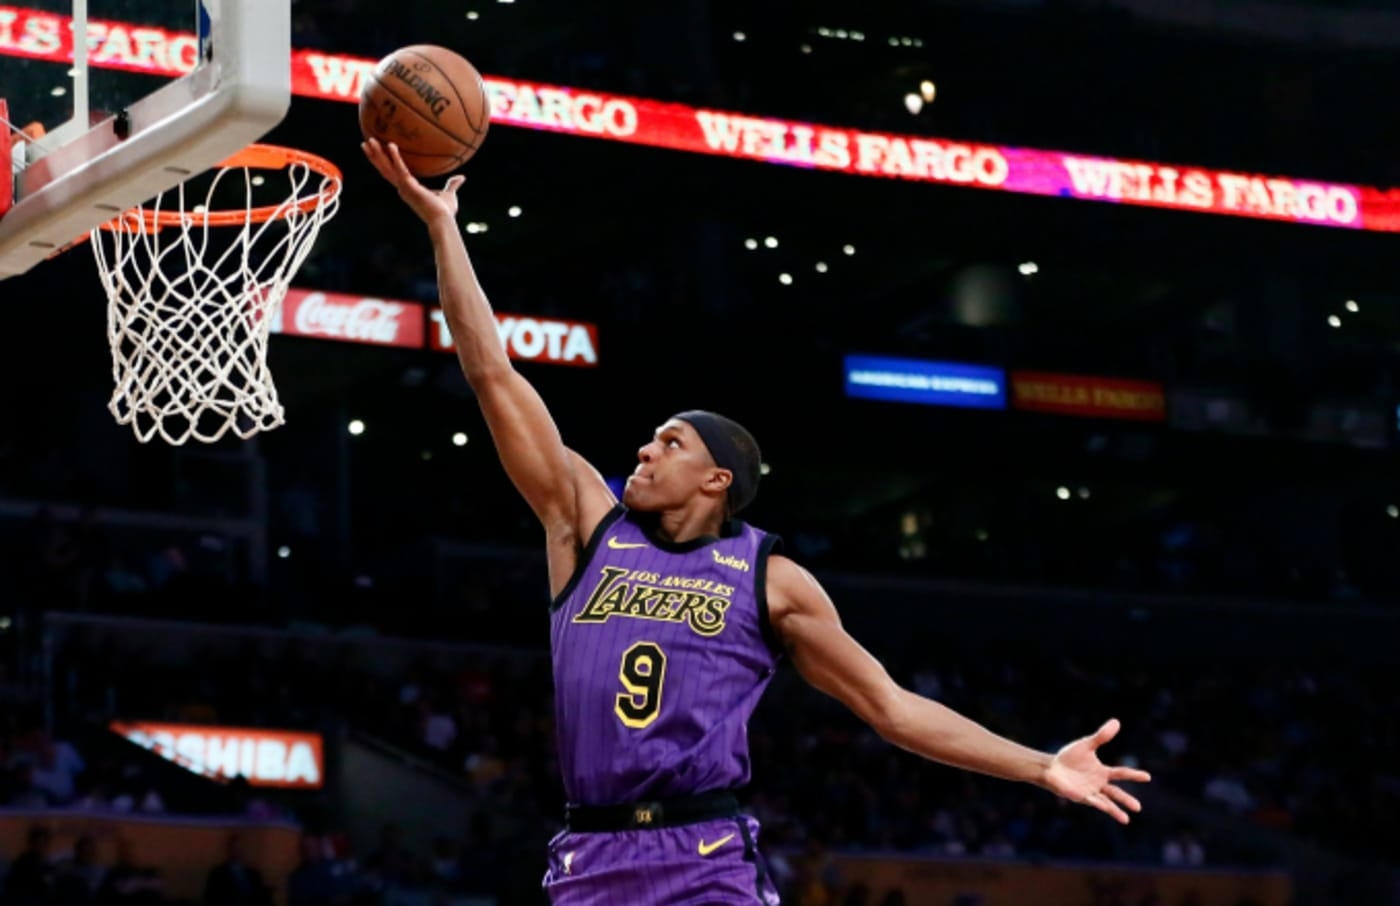 Rajon Rondo #9 of the Los Angeles Lakers shoots the ball against the Charlotte Hornets